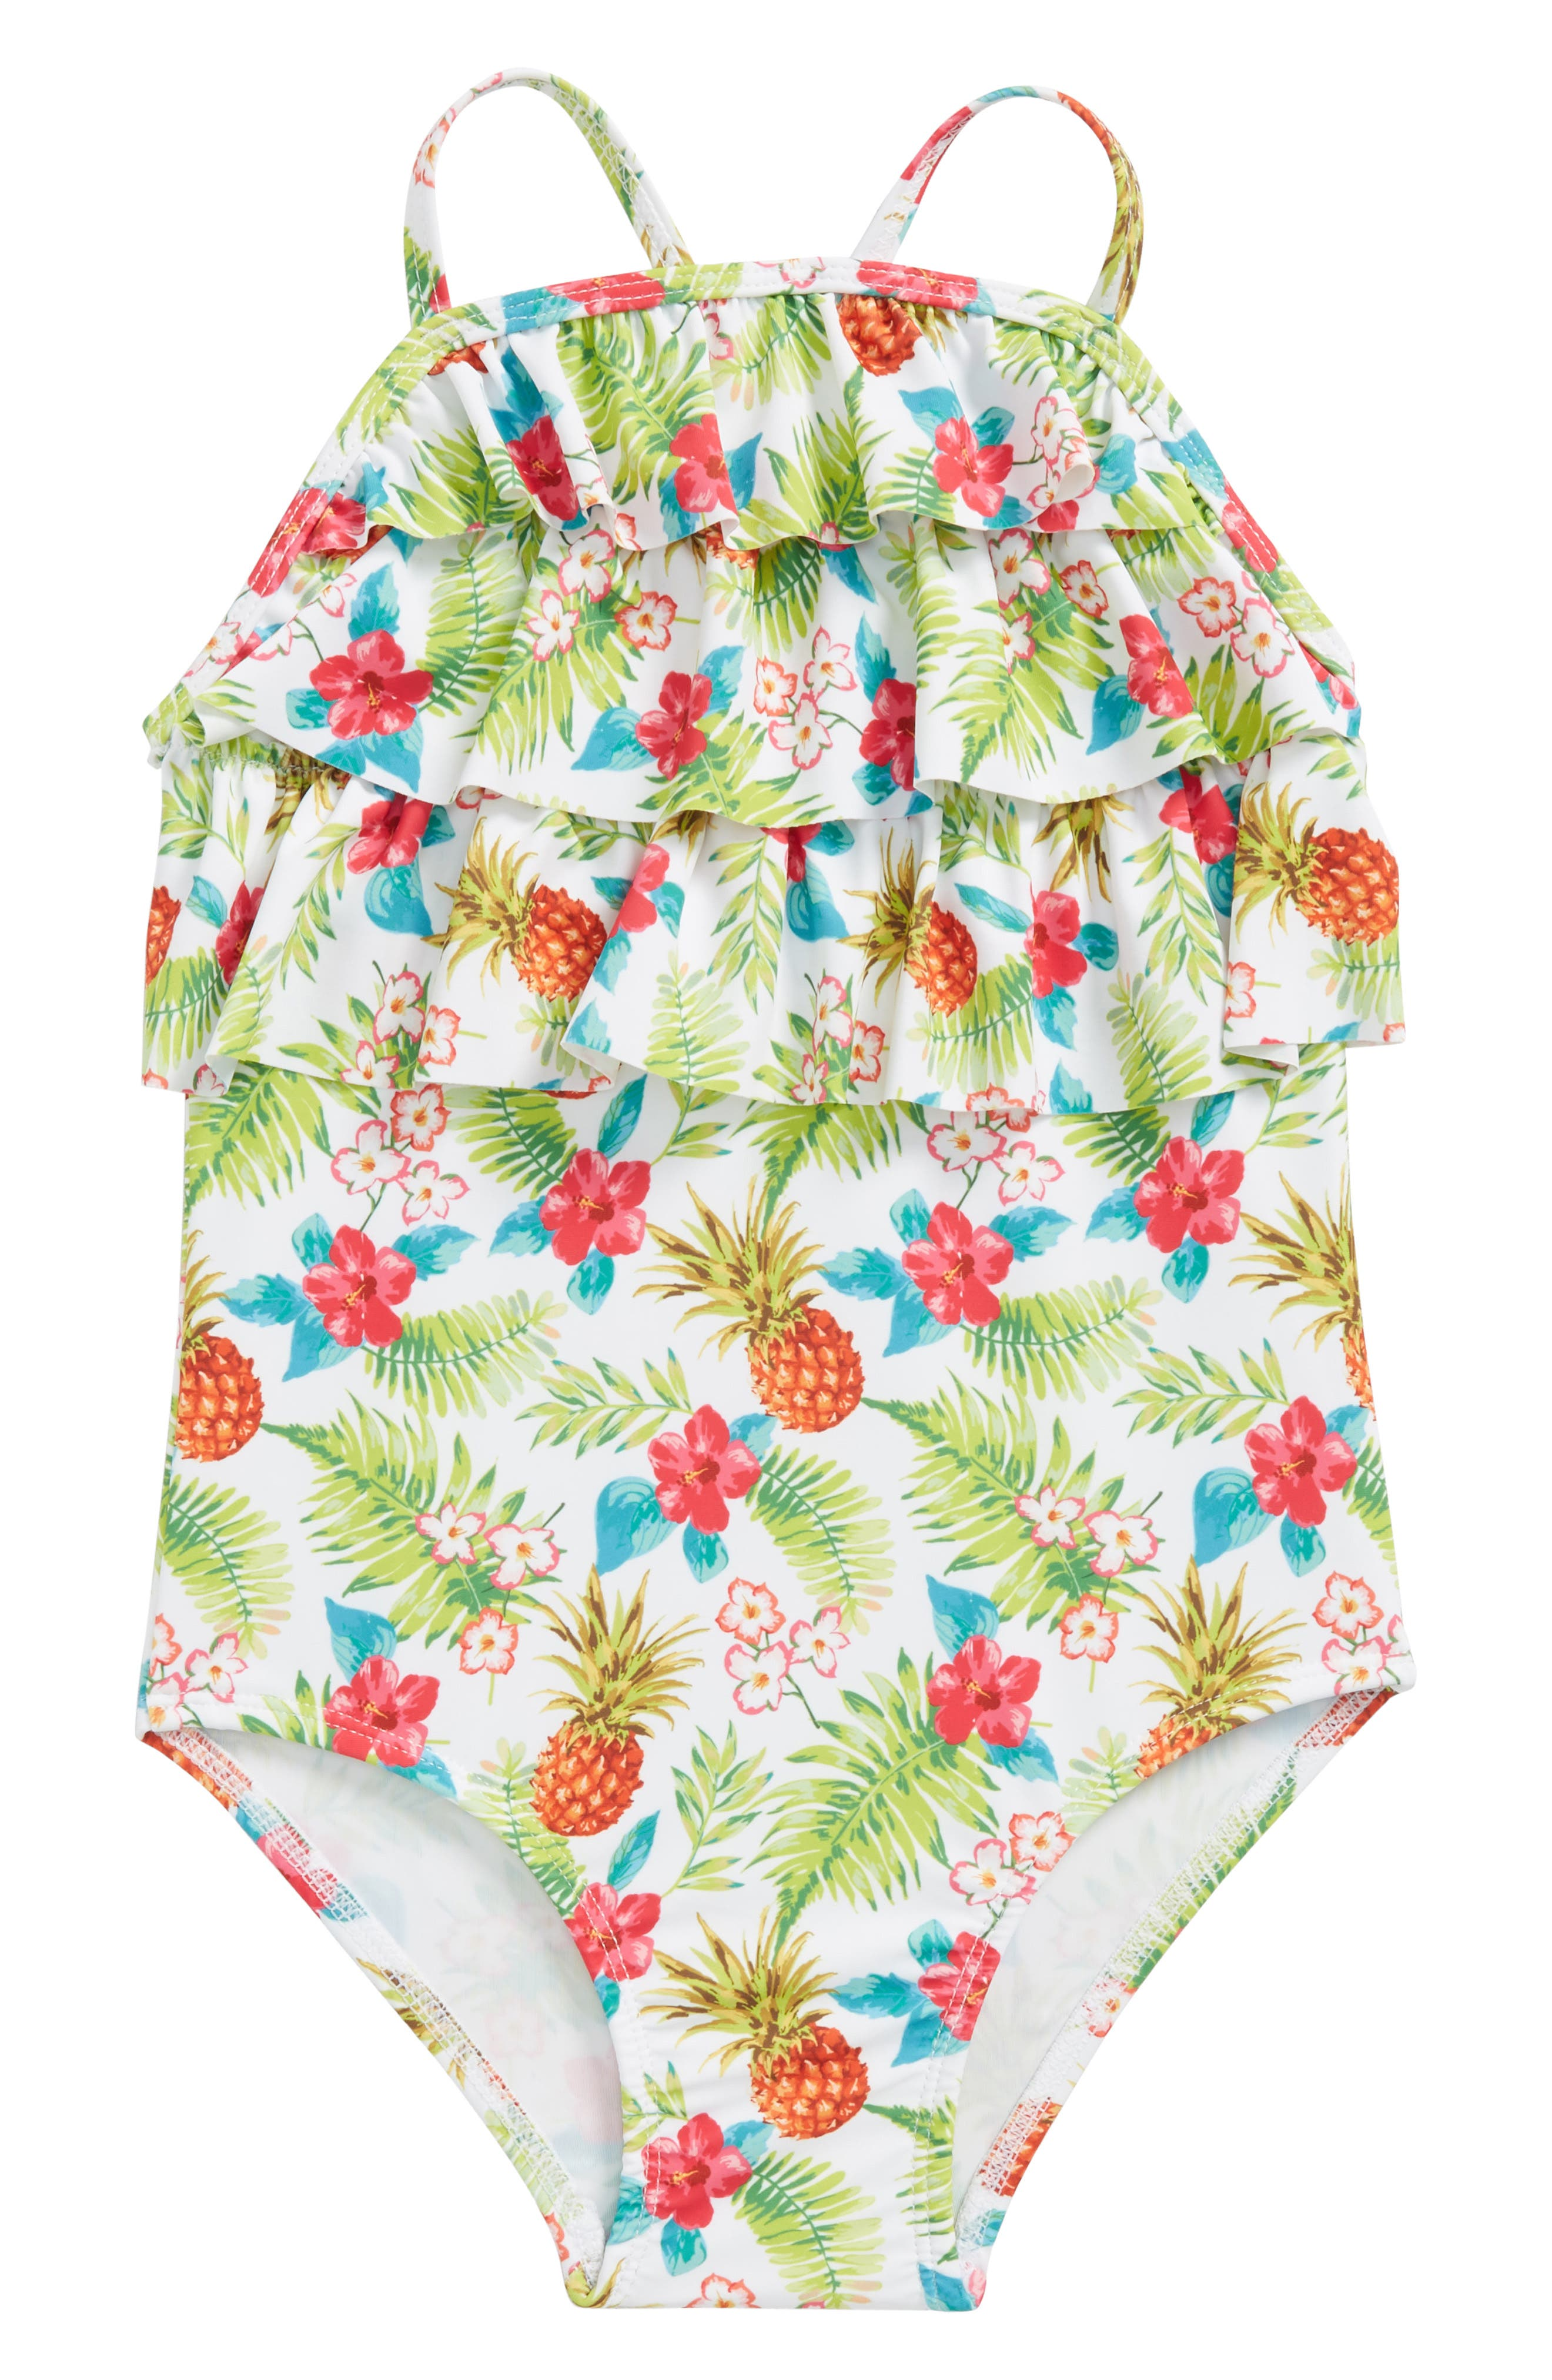 Alternate Image 1 Selected - Sol Swim Tropical Holiday One-Piece Swimsuit (Toddler Girls & Little Girls)